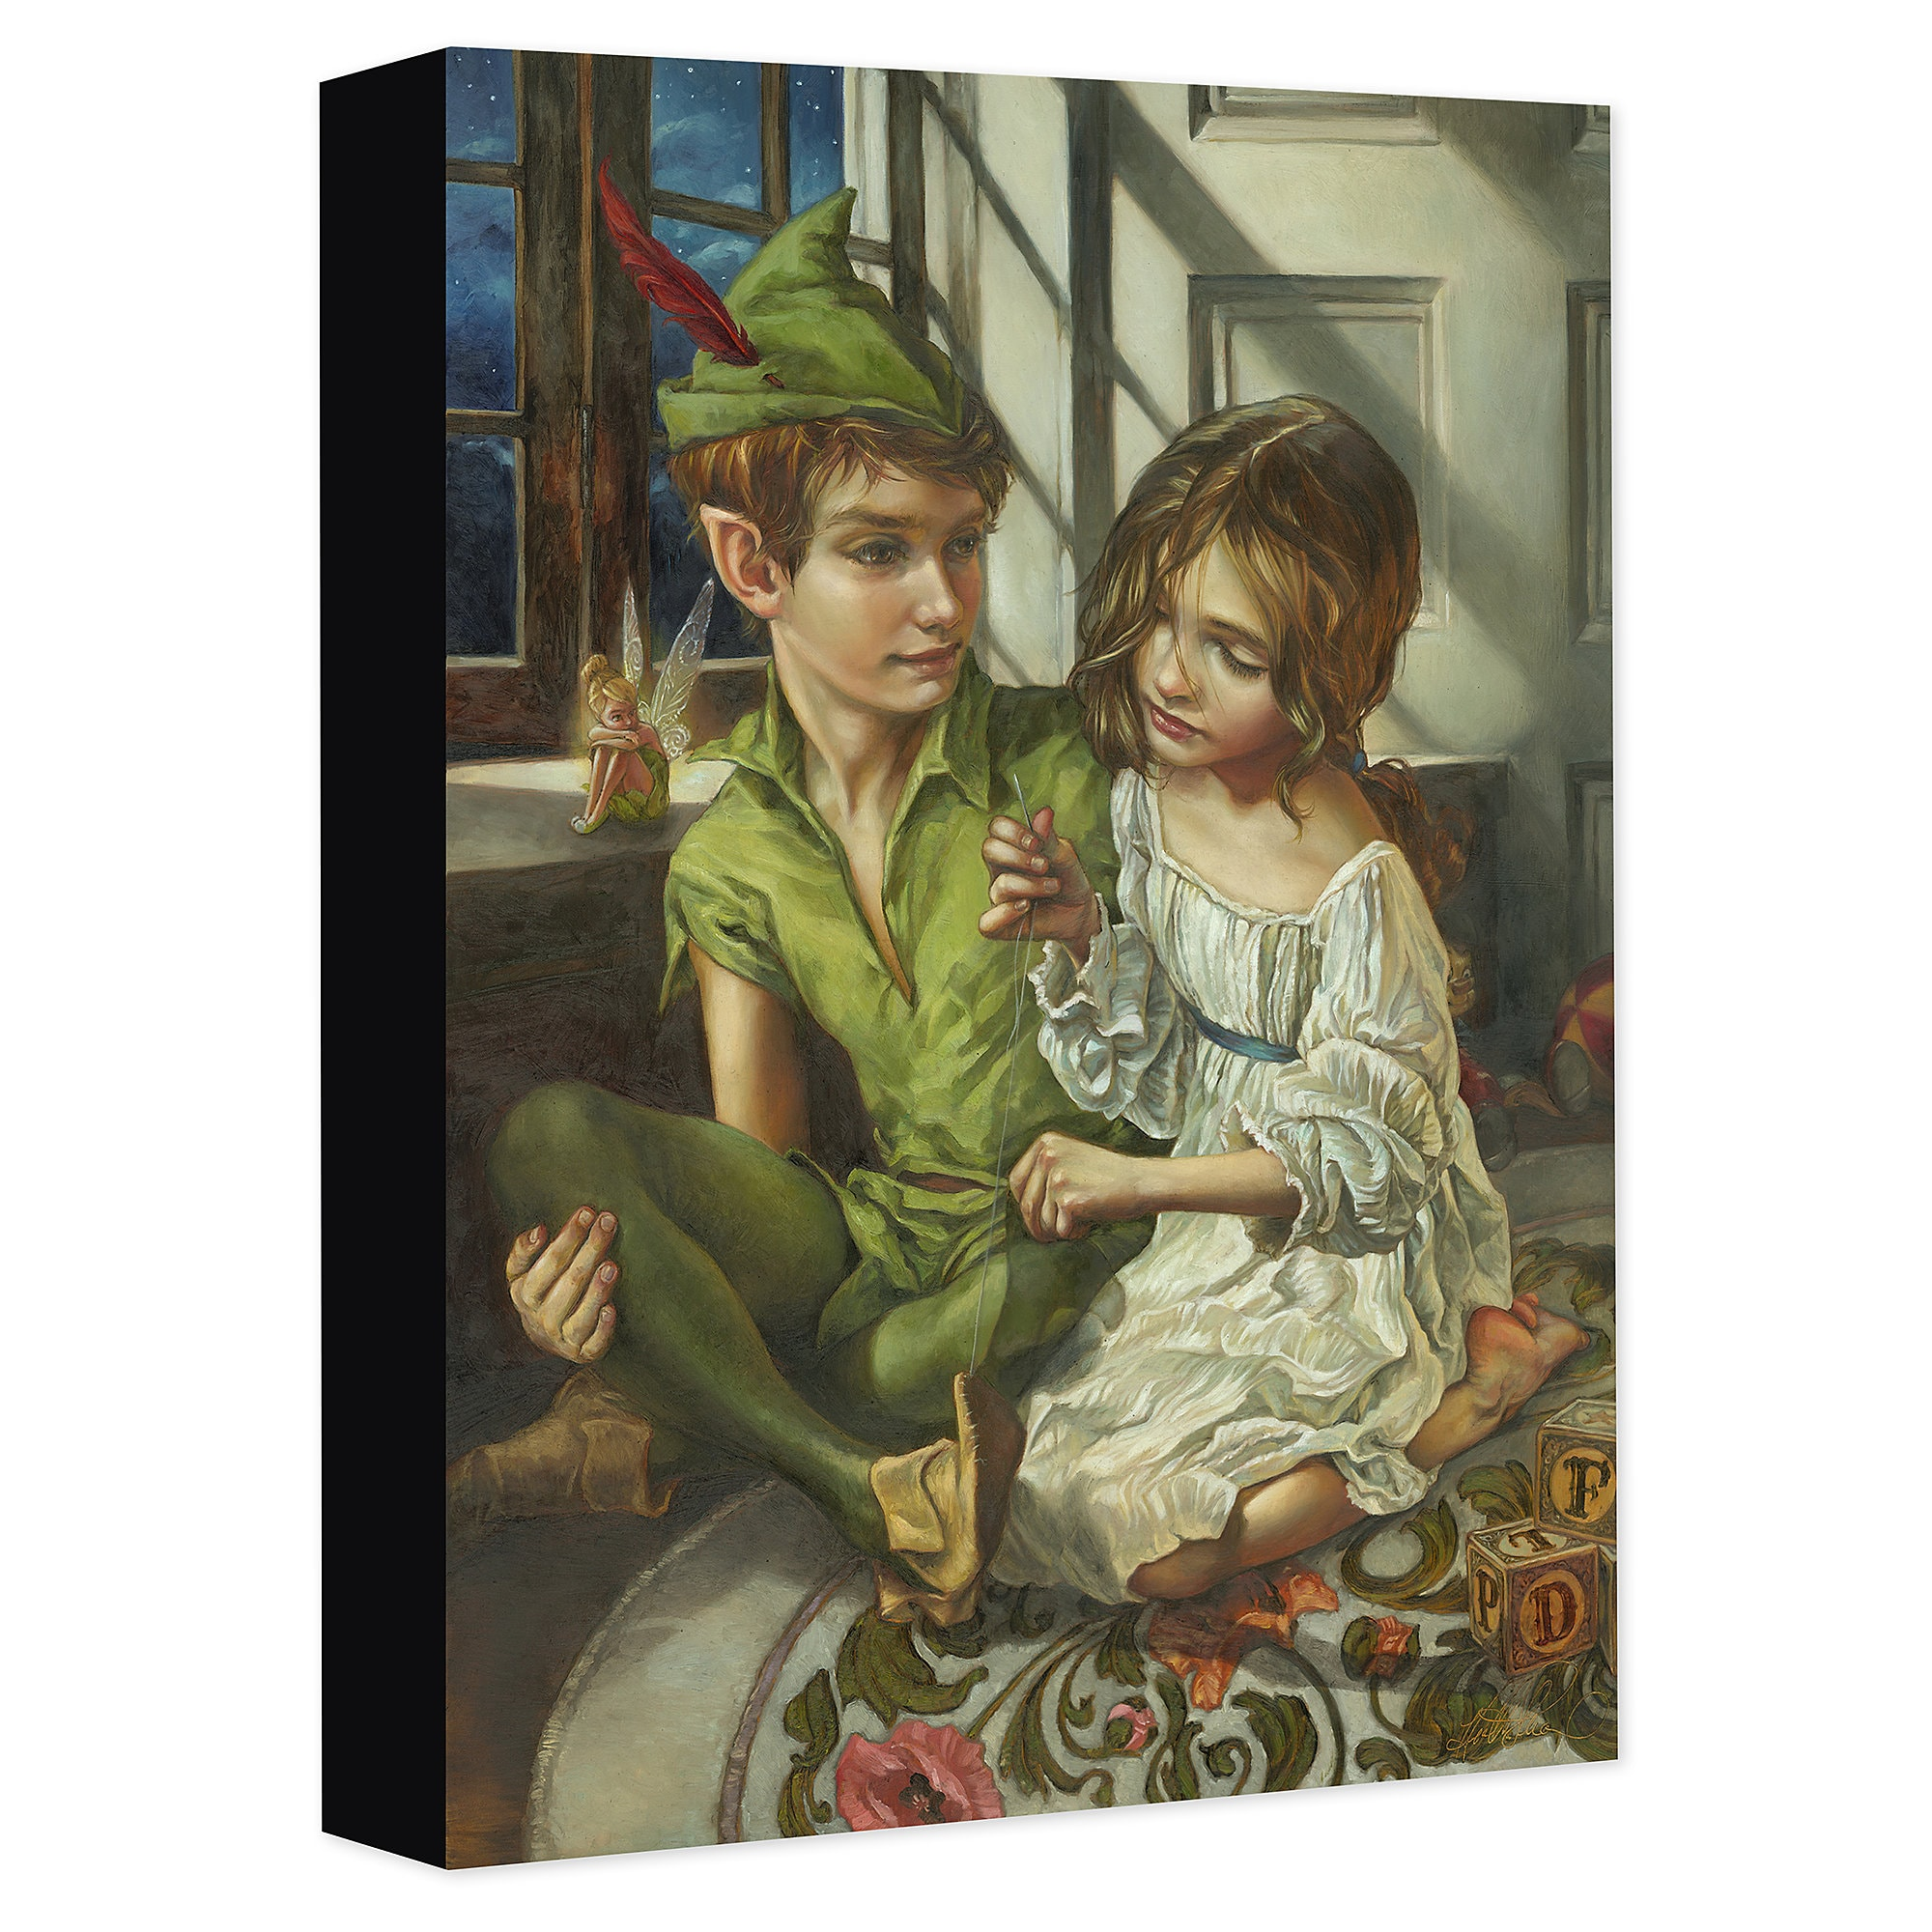 Peter Pan and Wendy ''Sewn to His Shadow'' Giclée on Canvas by Heather Theurer